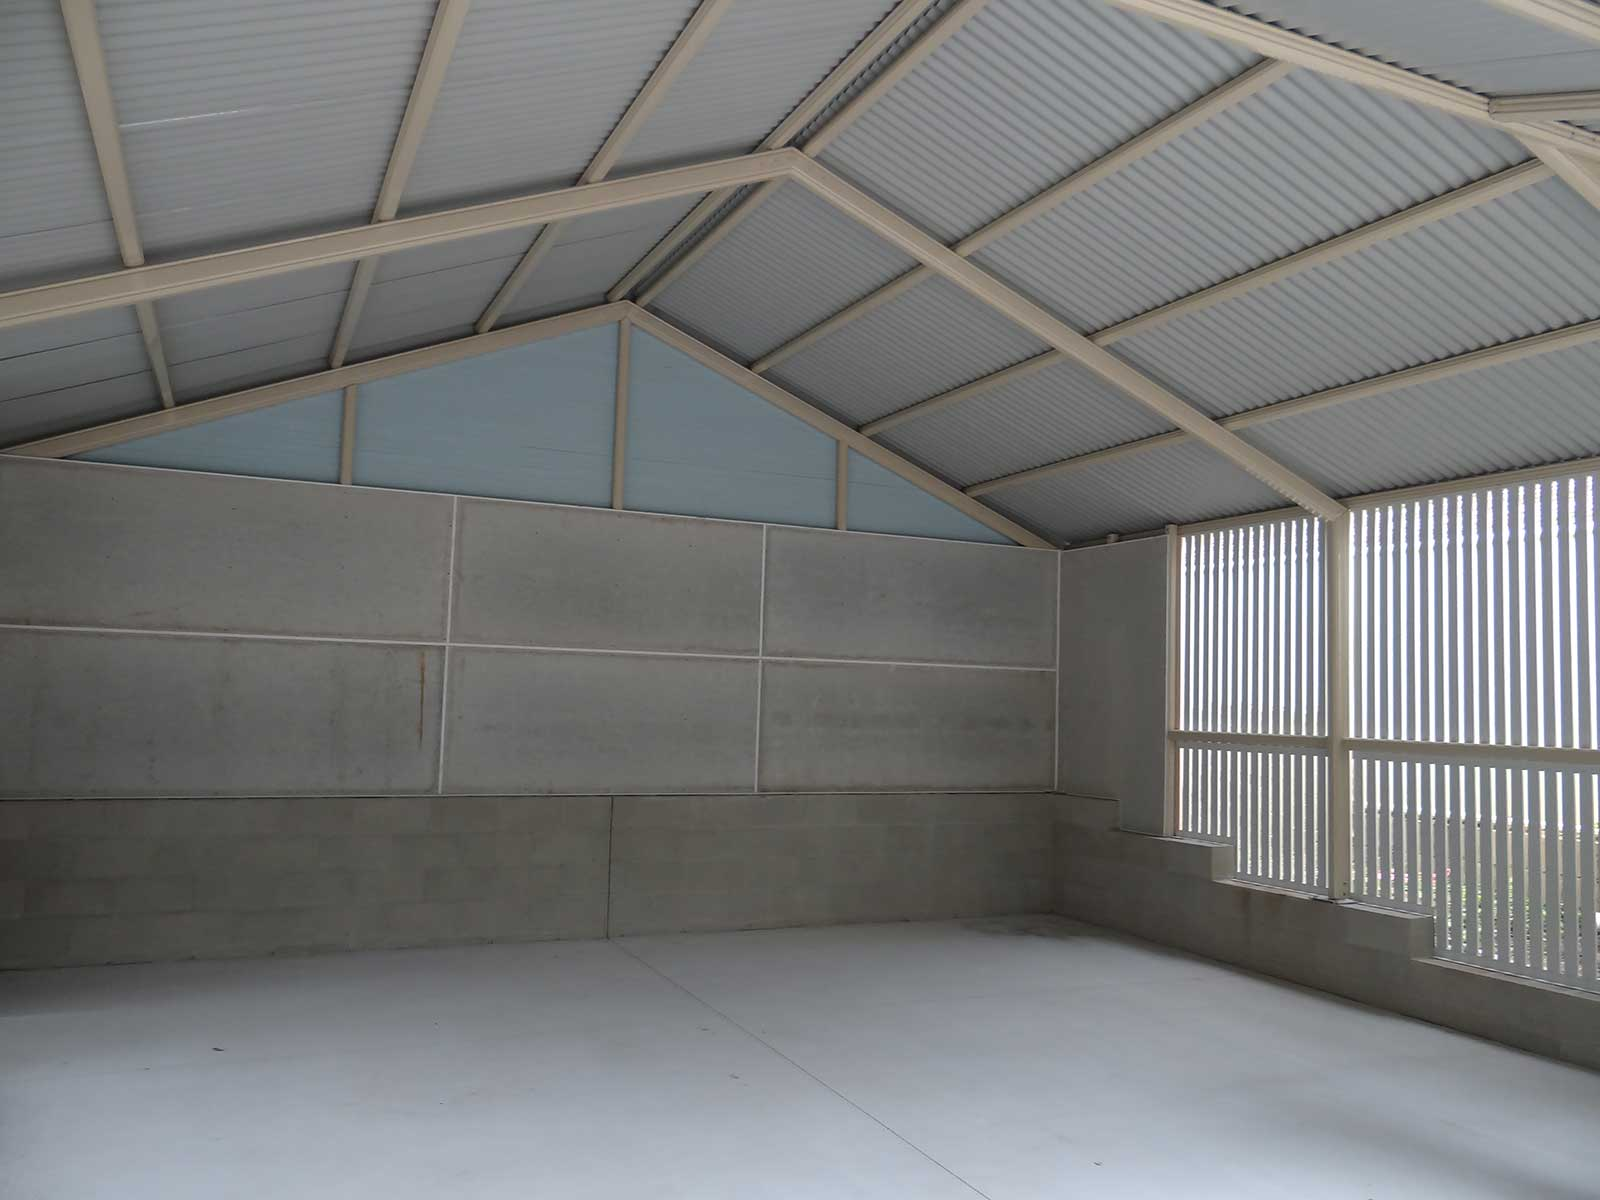 interior of gable carport brisbane suburbs